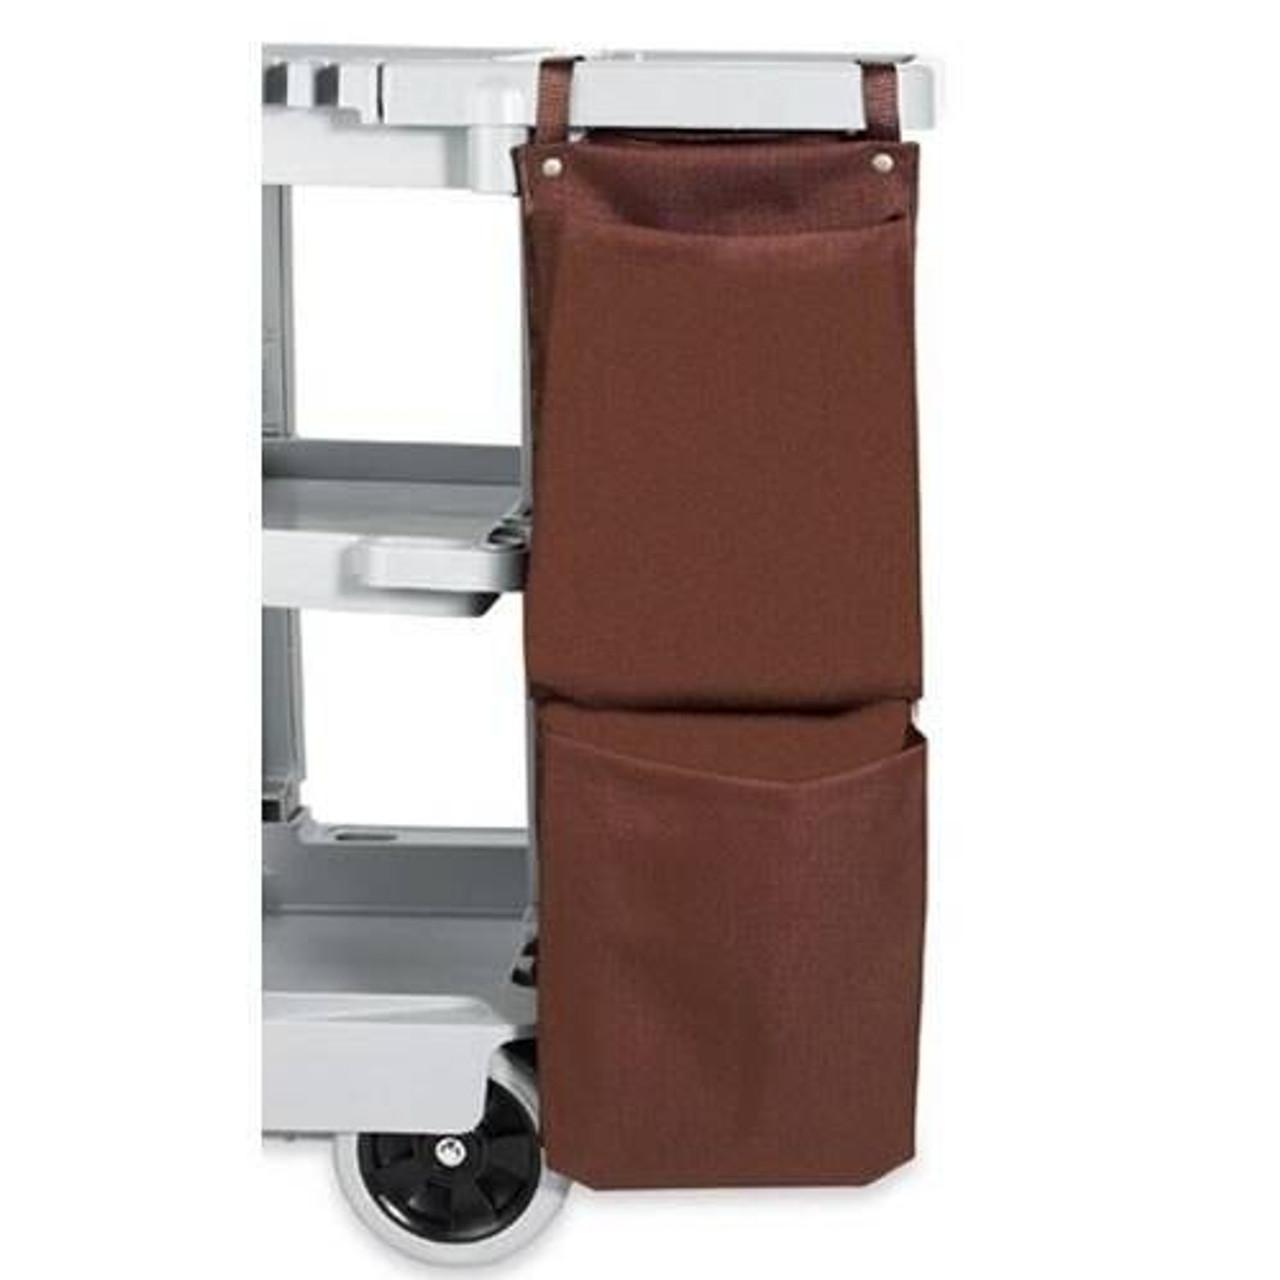 HOSPITALITY 1 SOURCE HOSPITALITY 1 SOURCE or 2 POCKET or X DUTY HOUSEKEEPING or CADDY BAGS or 12X35 or BROWN or 5 PER CASE